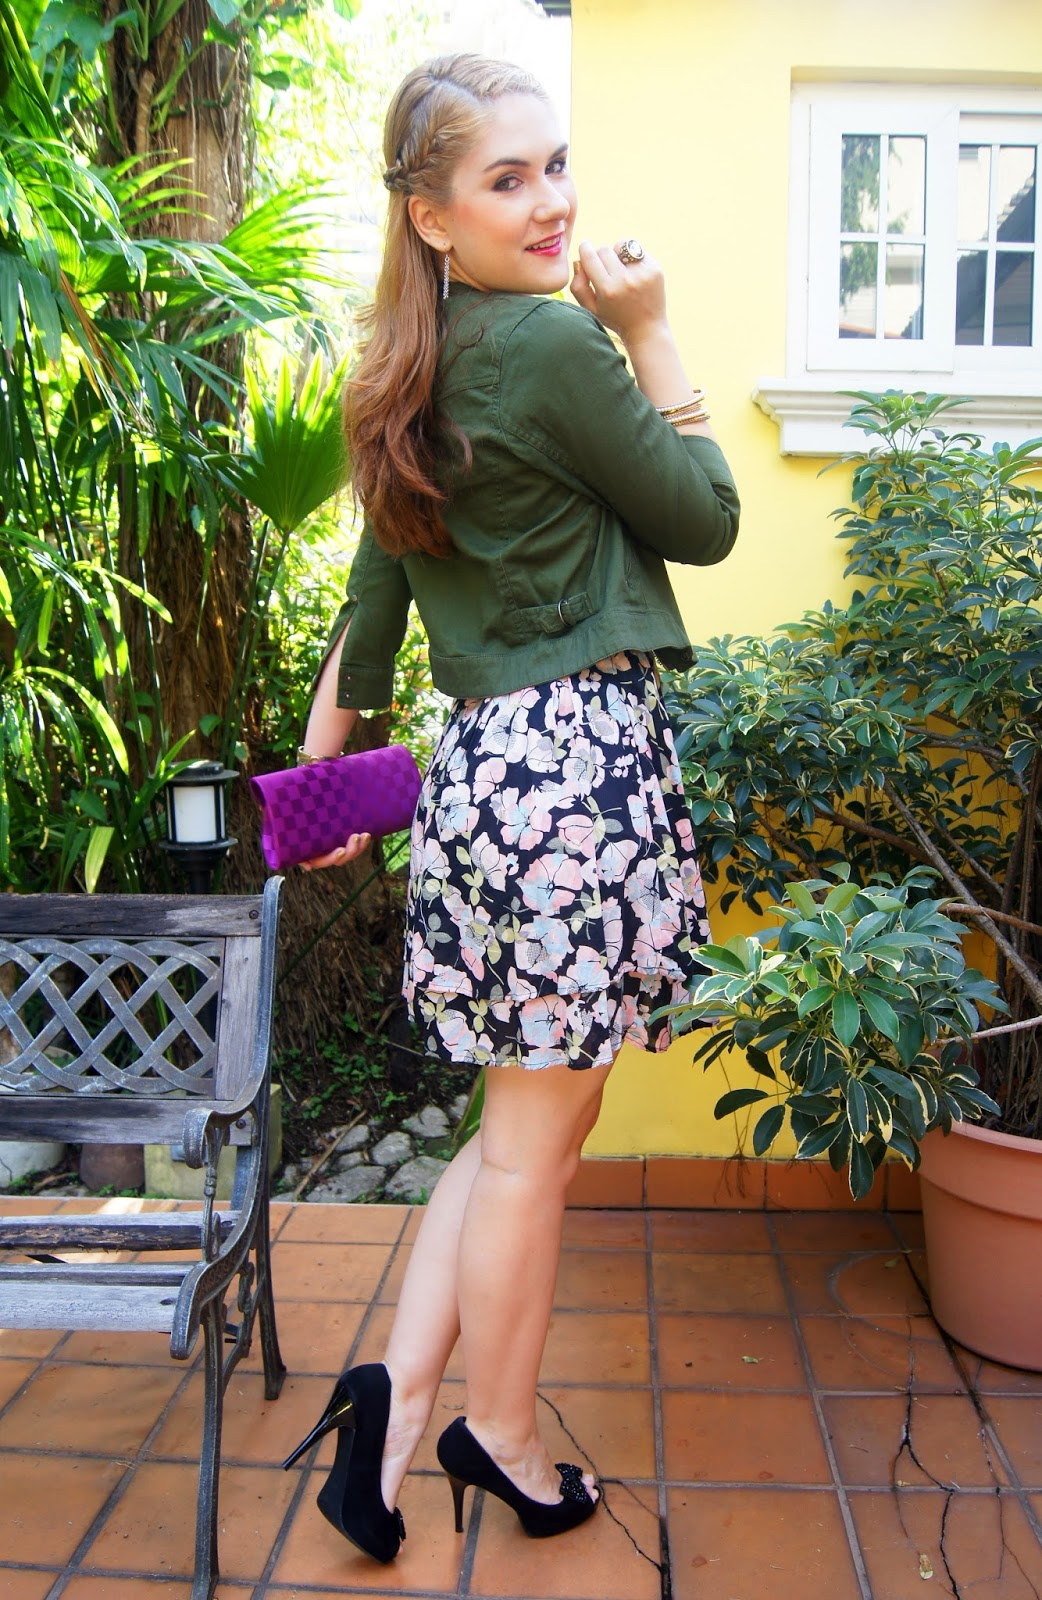 Make a cargo jacket look more girly by pairing it with a floral dress!